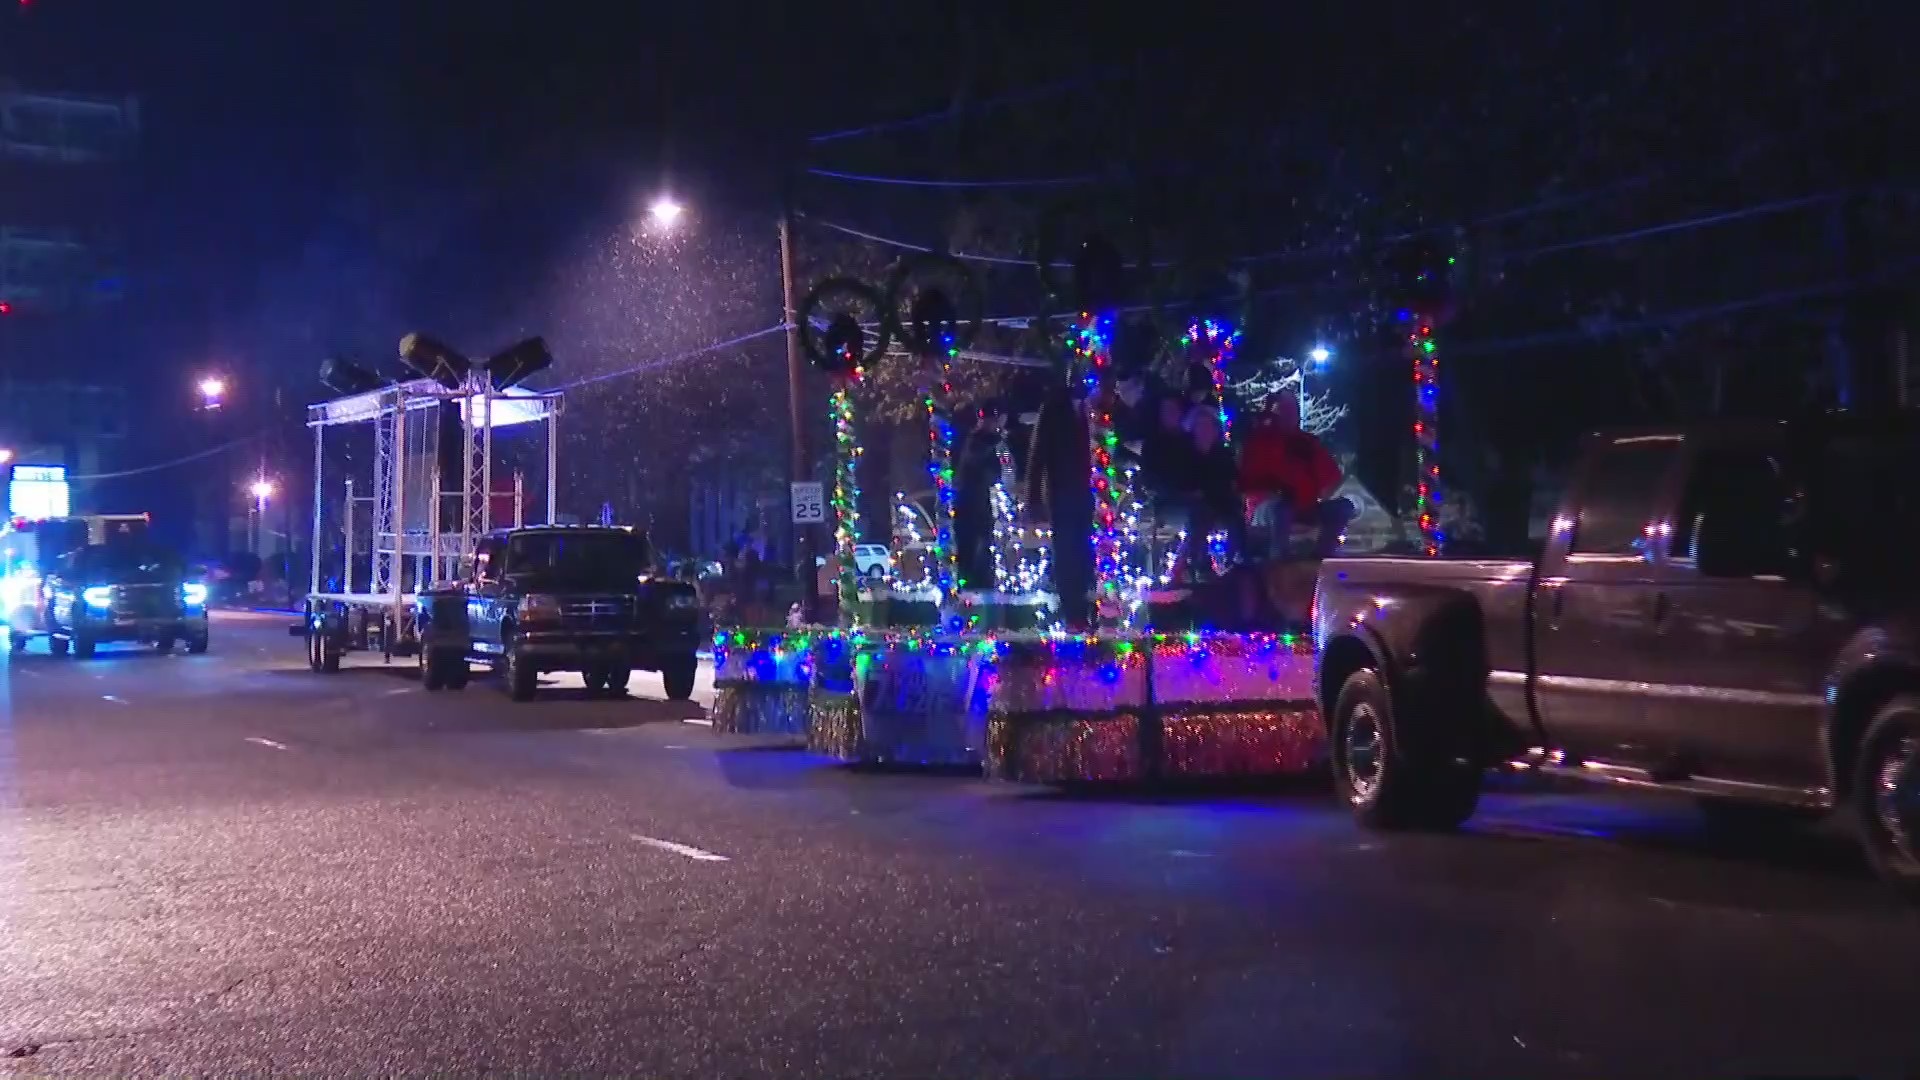 WATCH: The 2019 Spartanburg Christmas Parade